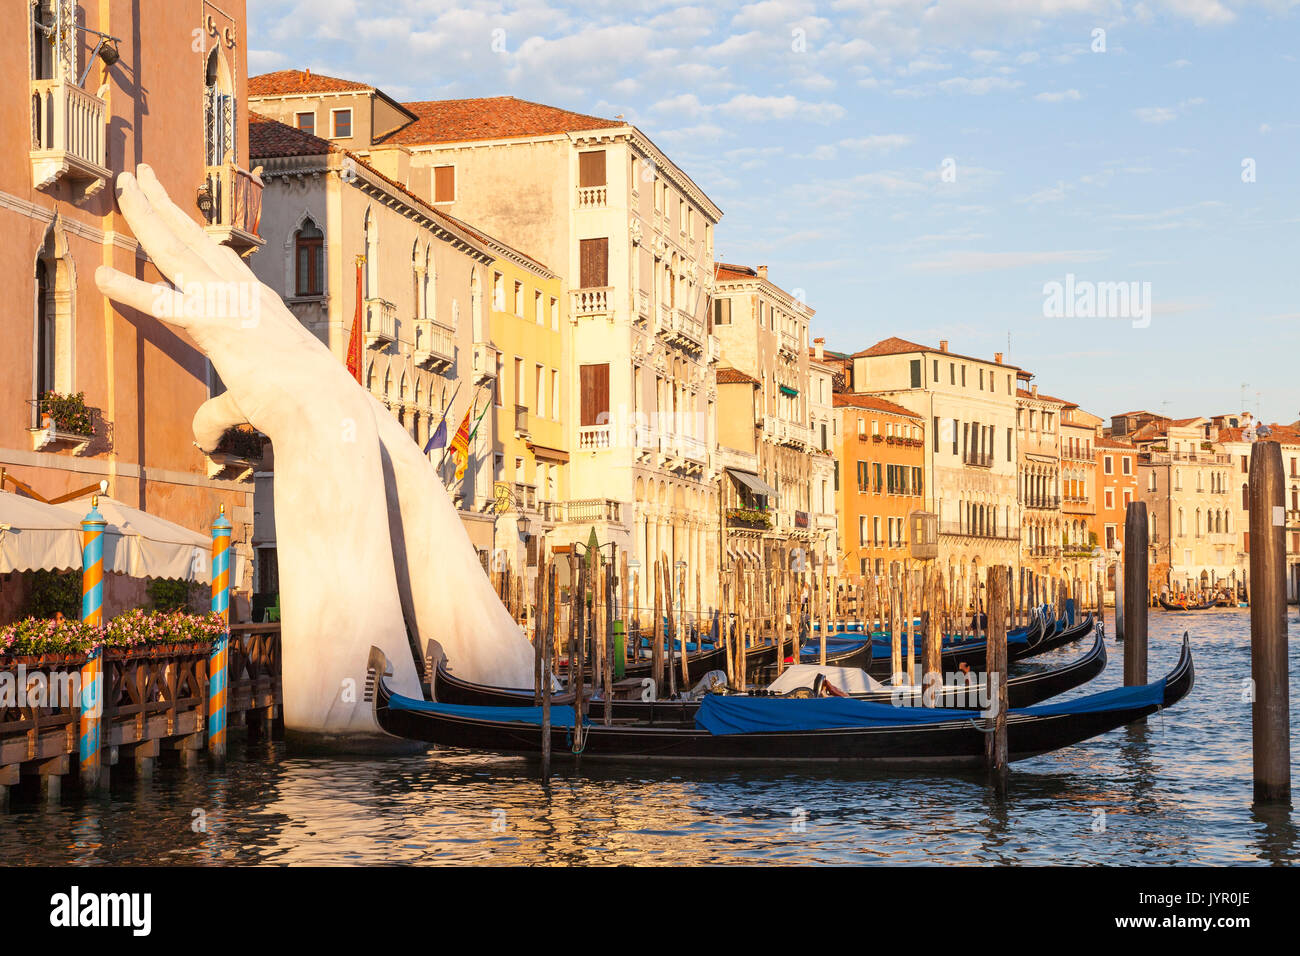 Lorenzo Quinn artwork Support with hands supporting Ca Sagredo Hotel and the Grand Canal at sunset , Venice,  Veneto, Italy with moored gondolas in th - Stock Image